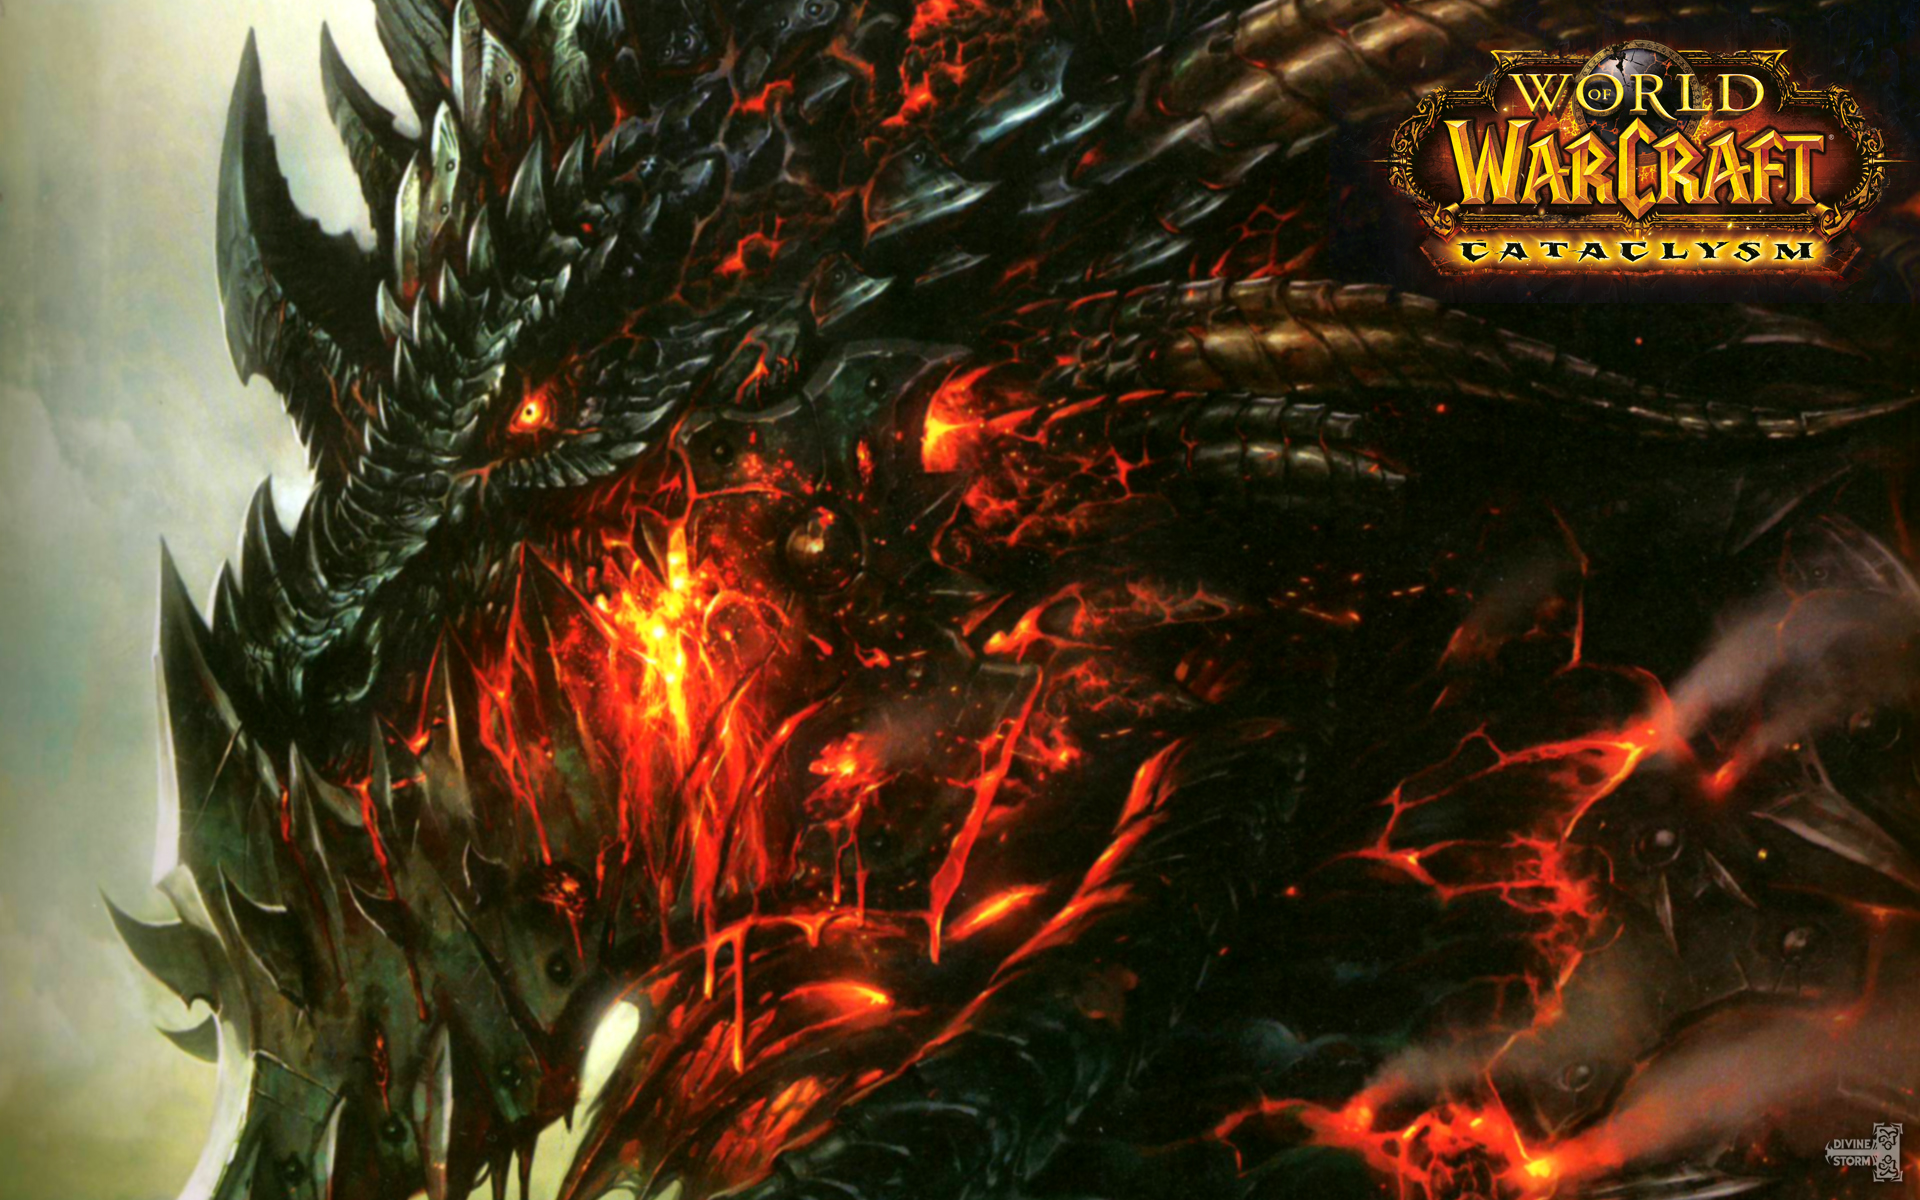 Dragons World Of Warcraft Deathwing Blizzard Entertainment Free